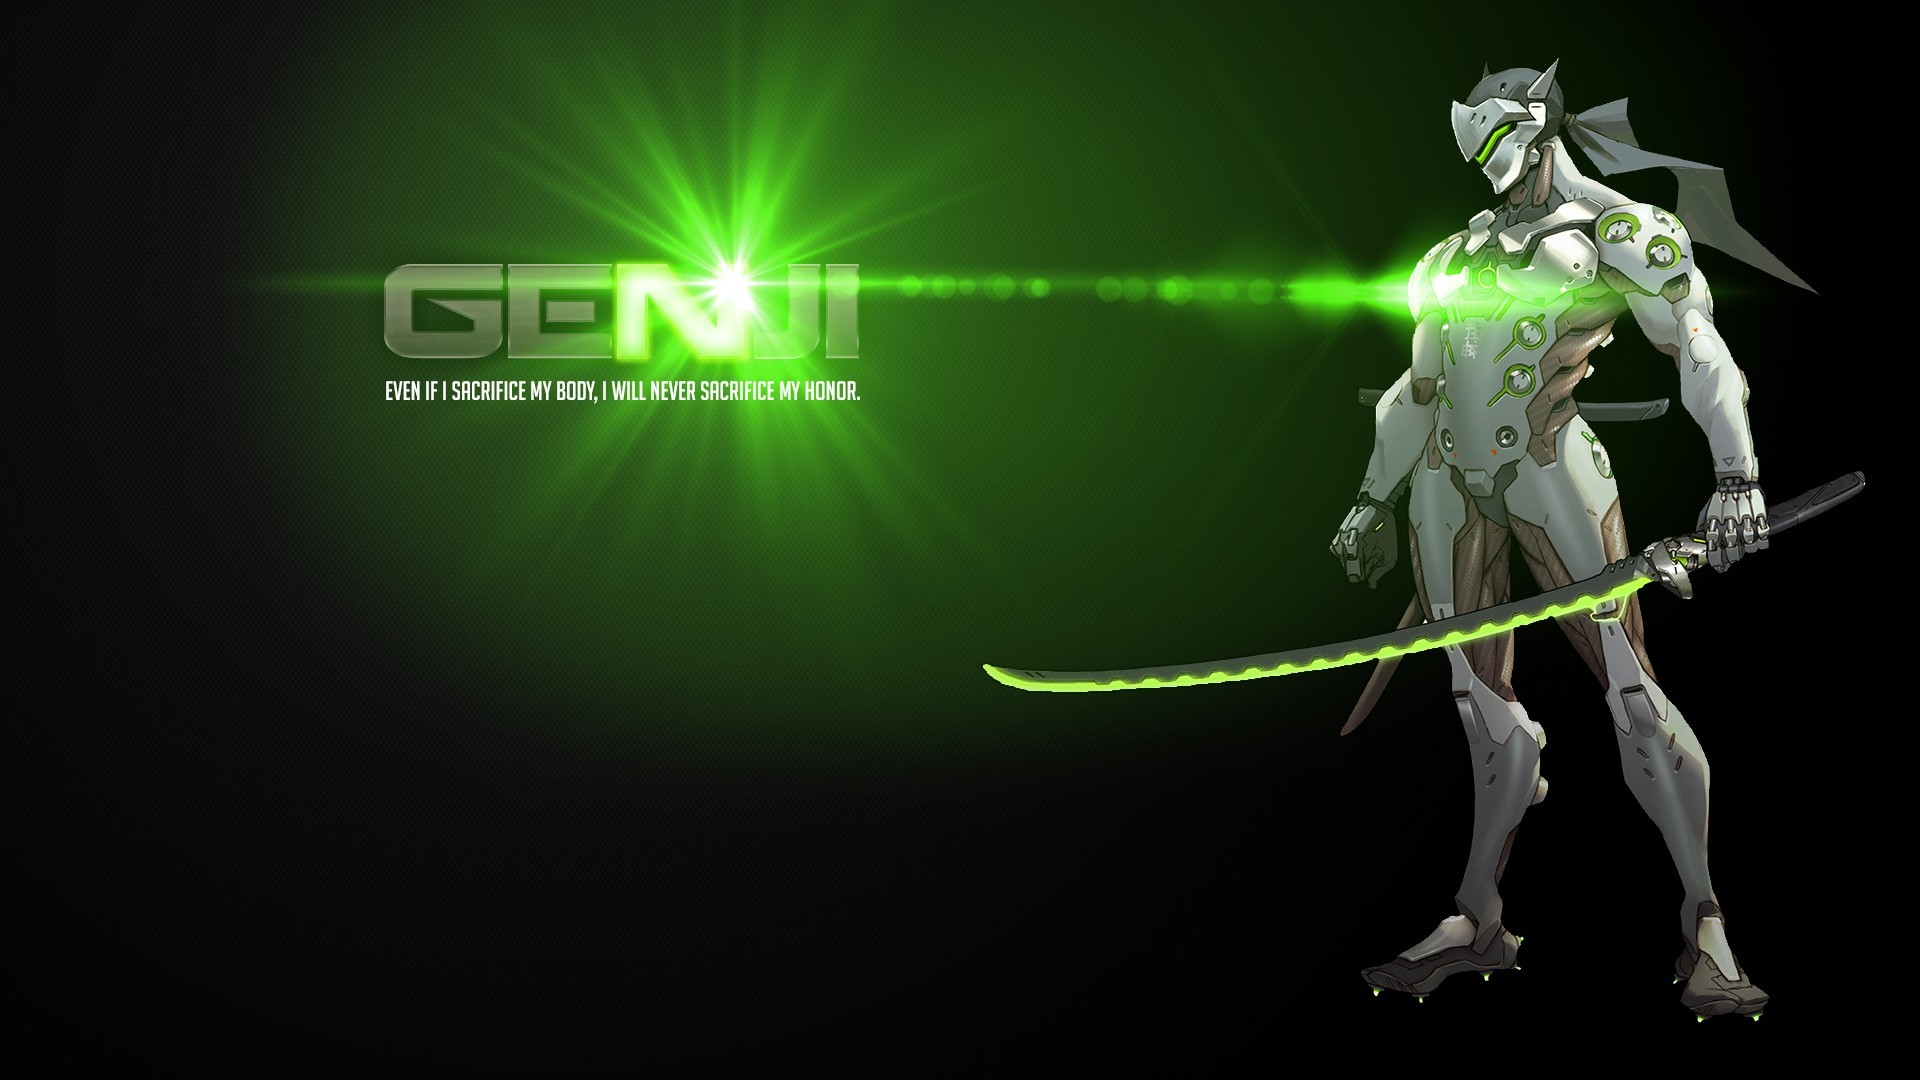 1920x1080 Genji Shimada, Blizzard Entertainment, Overwatch, Genji (Overwatch)  Wallpapers HD / Desktop and Mobile Backgrounds